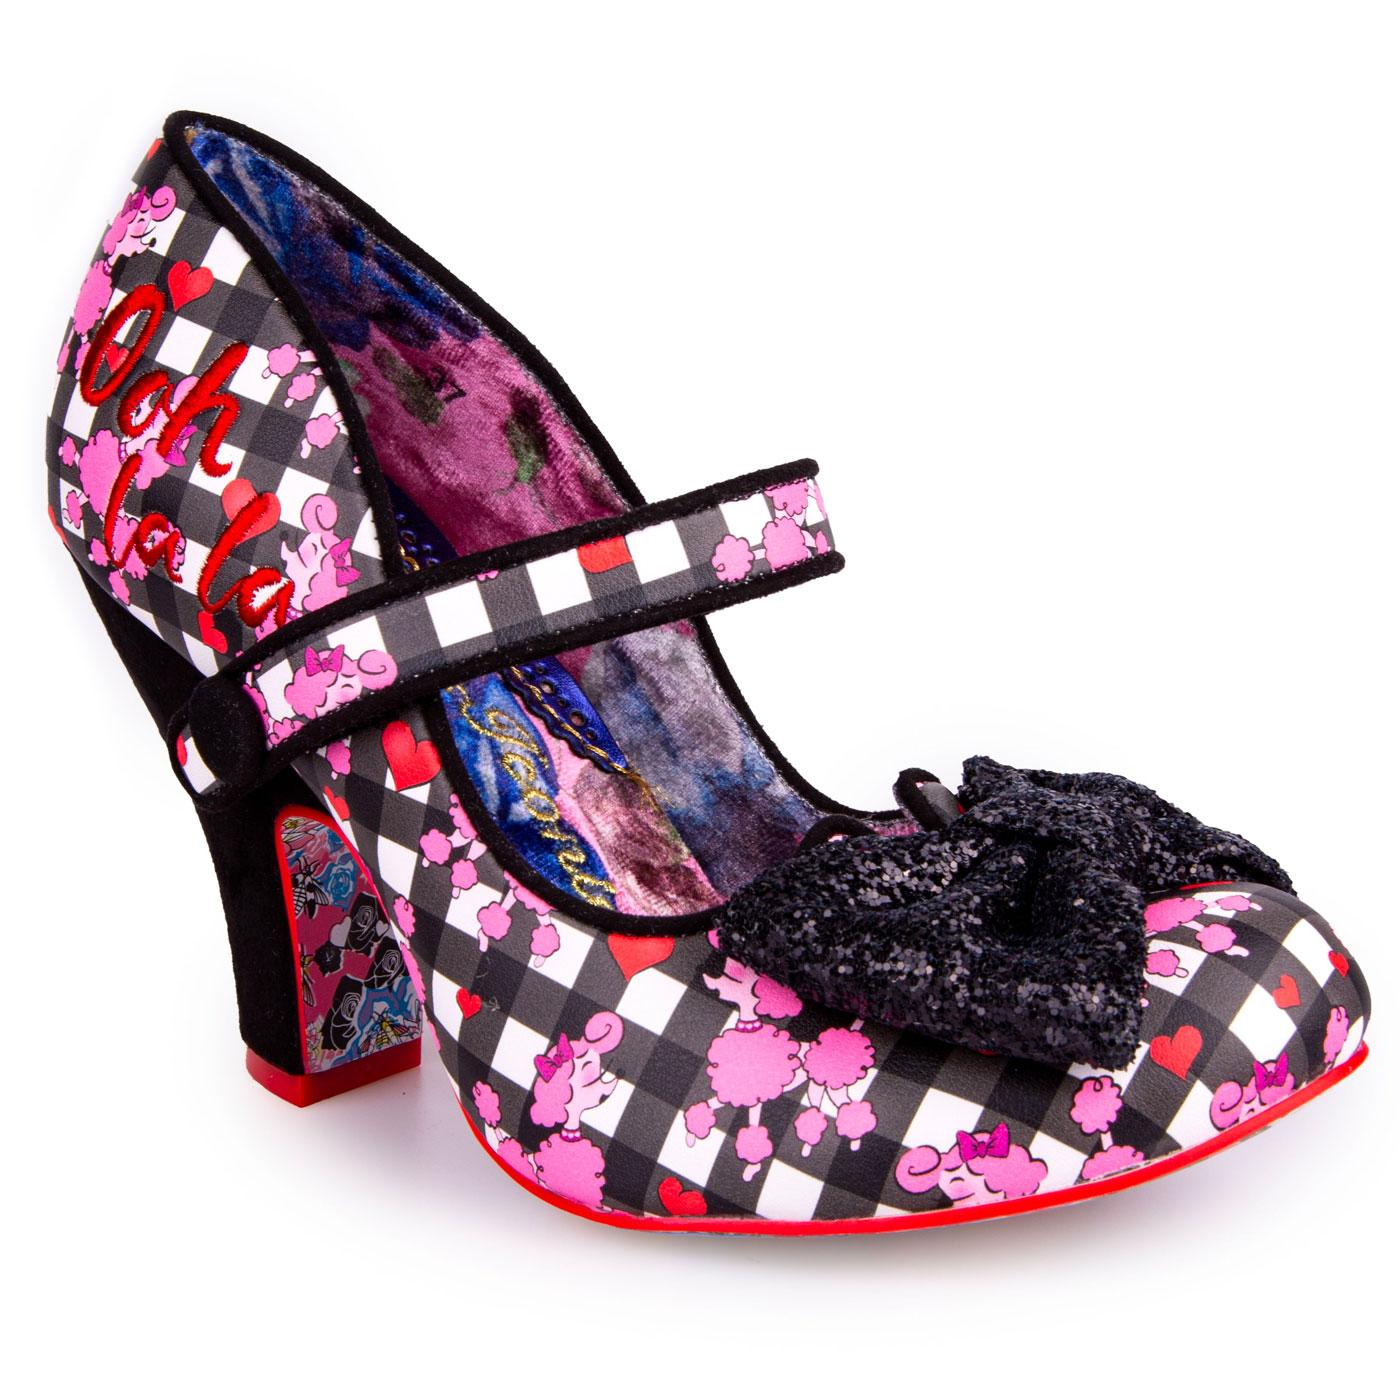 Fancy That IRREGULAR CHOICE Gingham Poodle Heels B